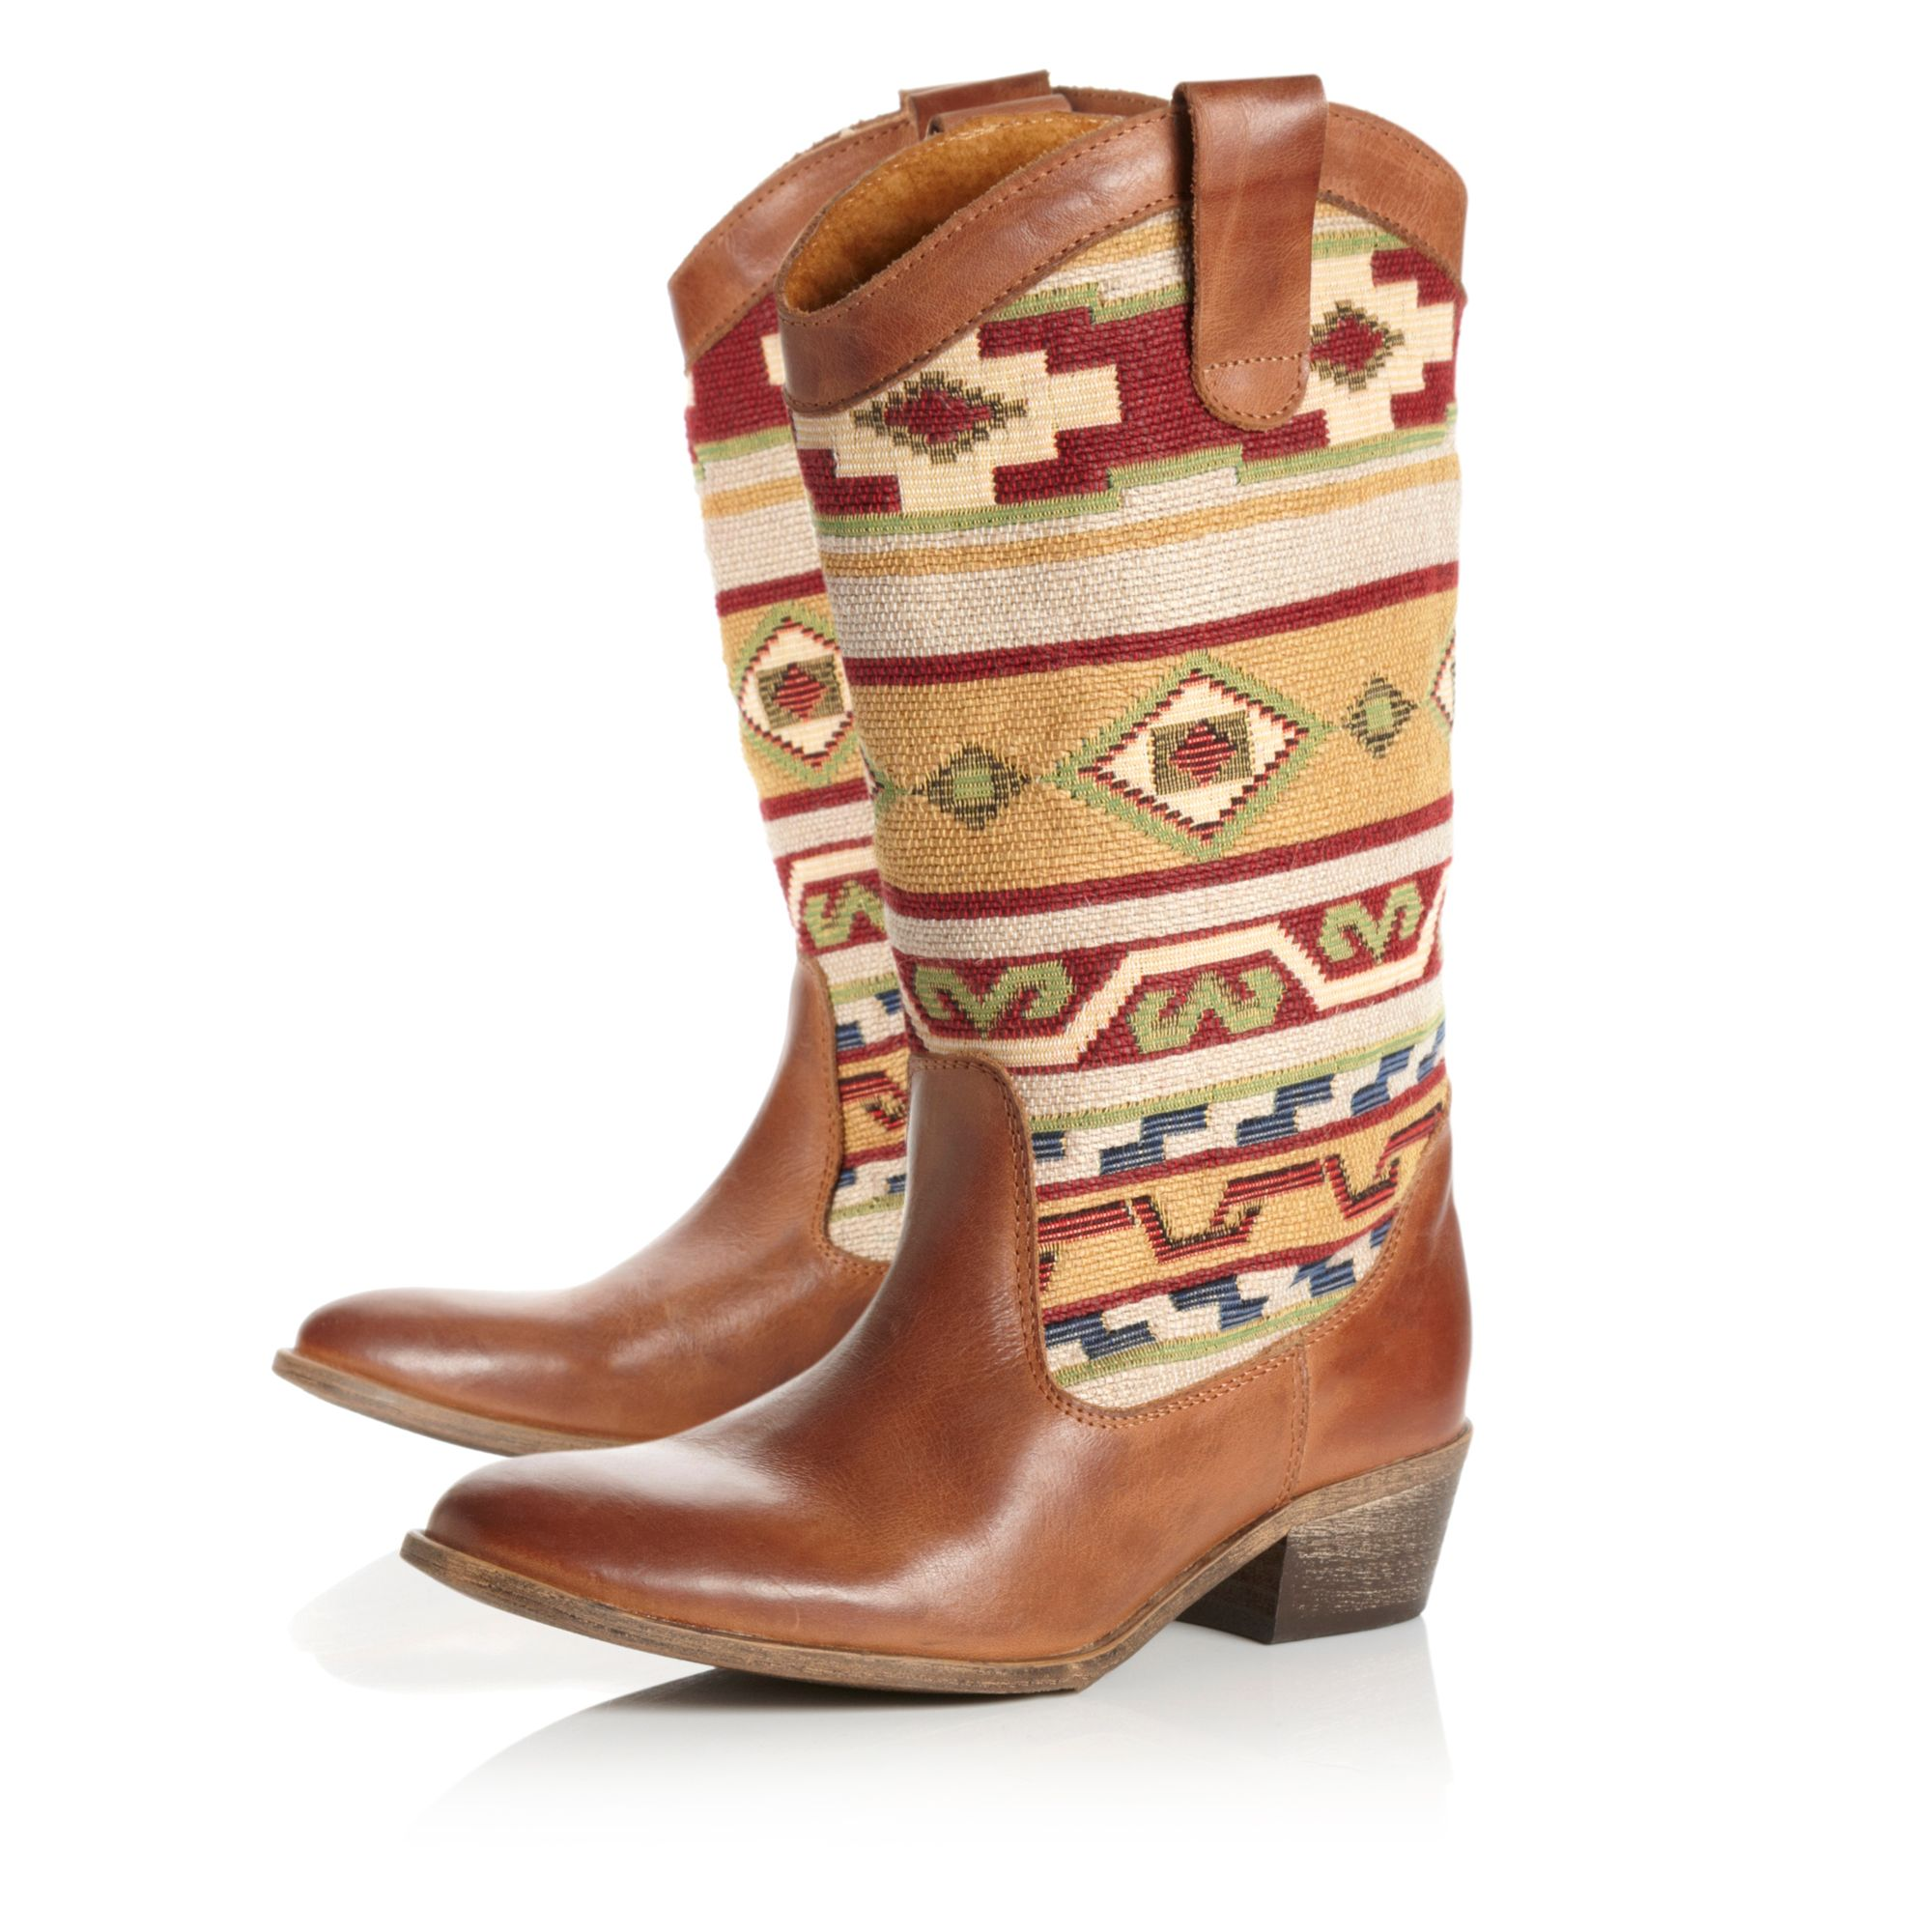 Ronata Fabric Calf Boots